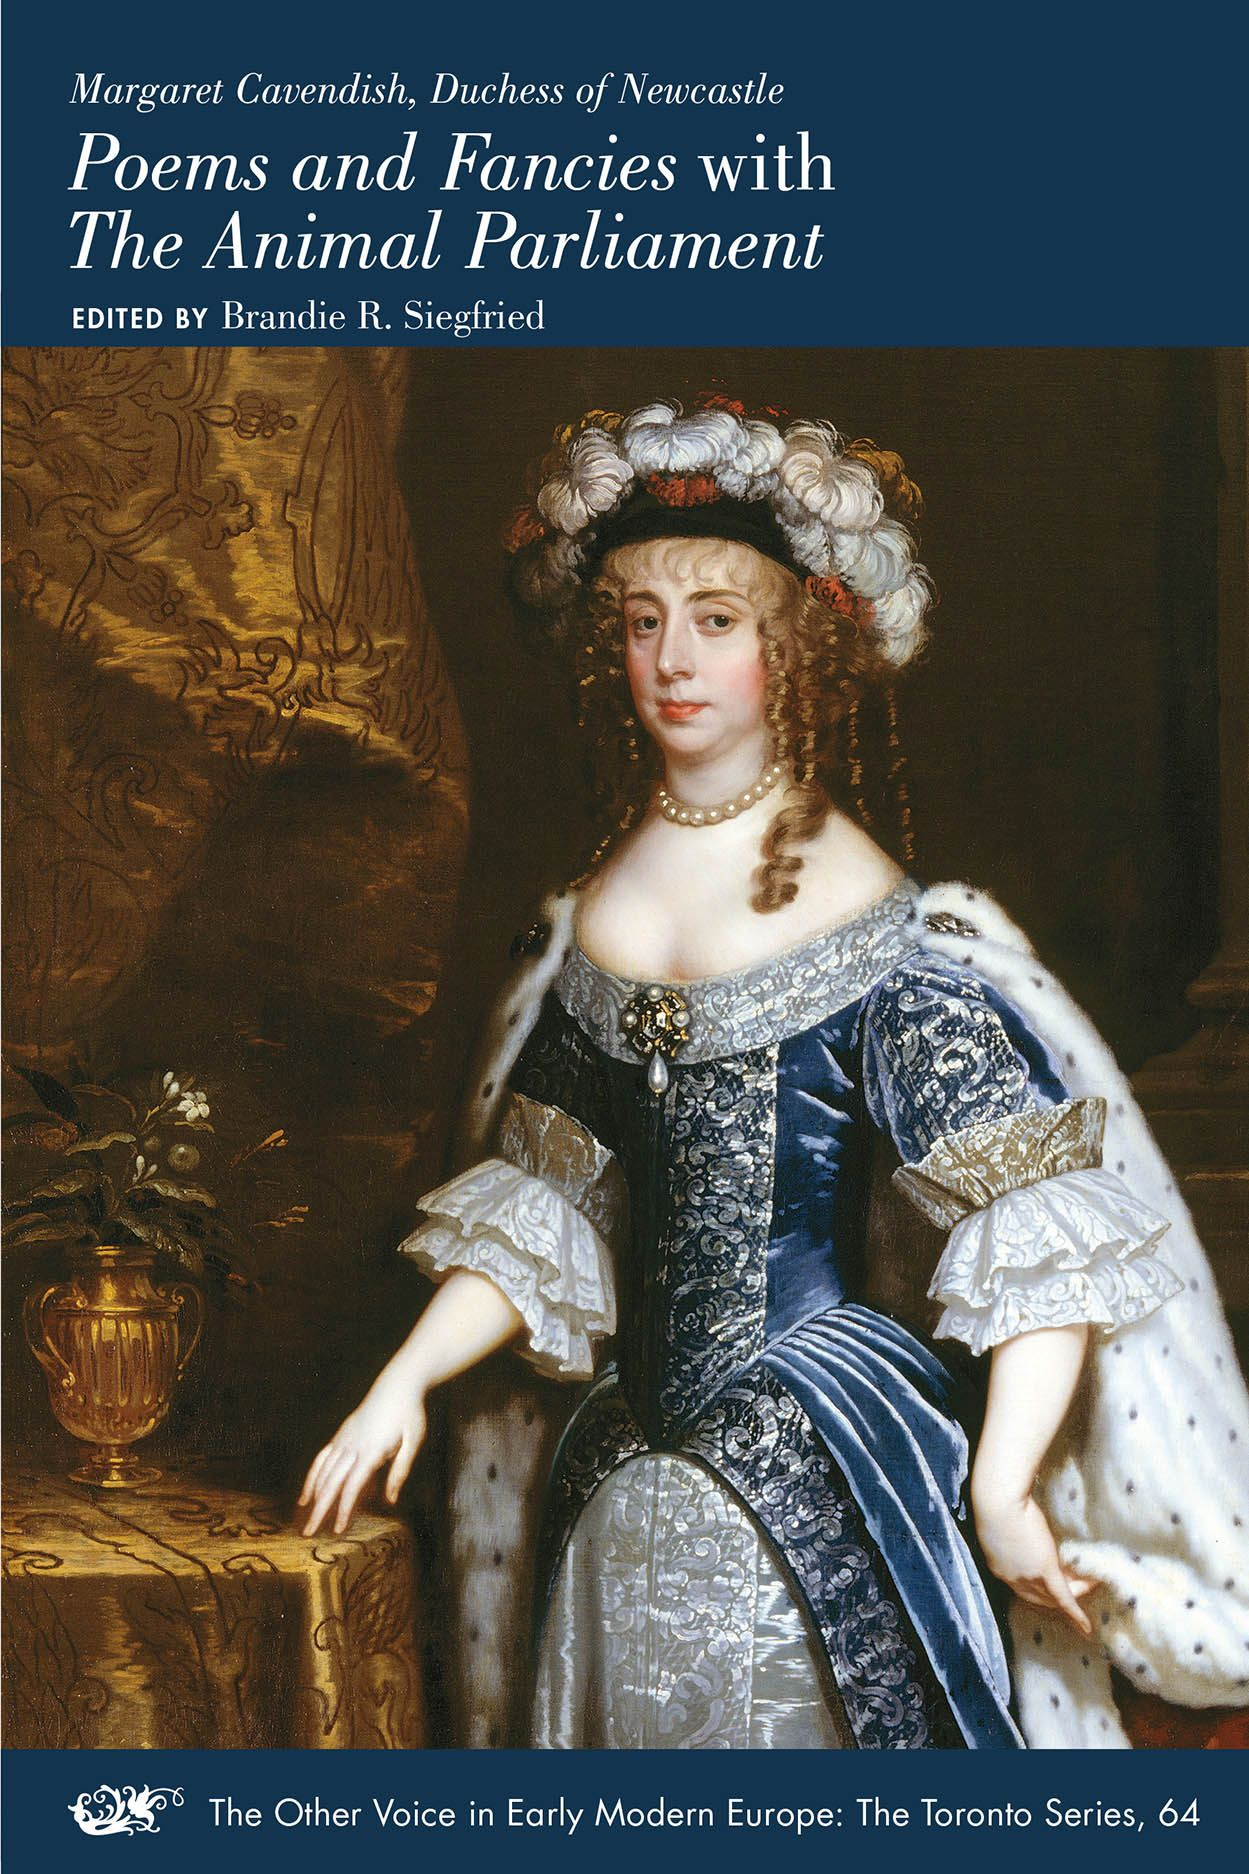 Margaret Cavendish, Duchess of Newcastle, Poems and Fancies with The Animal Parliament